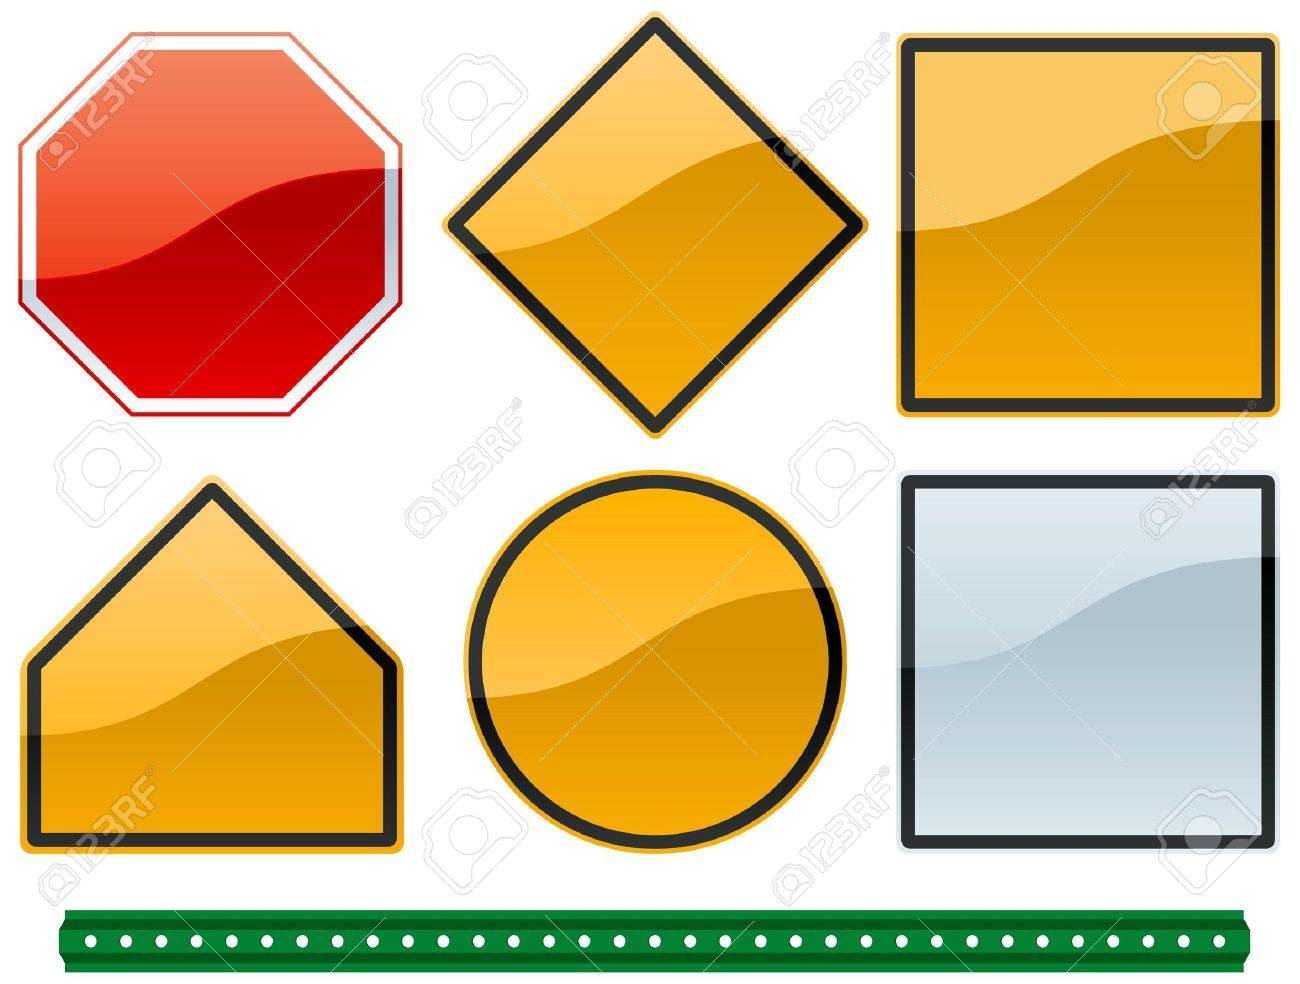 A Set Of Common Road Sign Shapes And Metallic Colors With Post Stock Photo